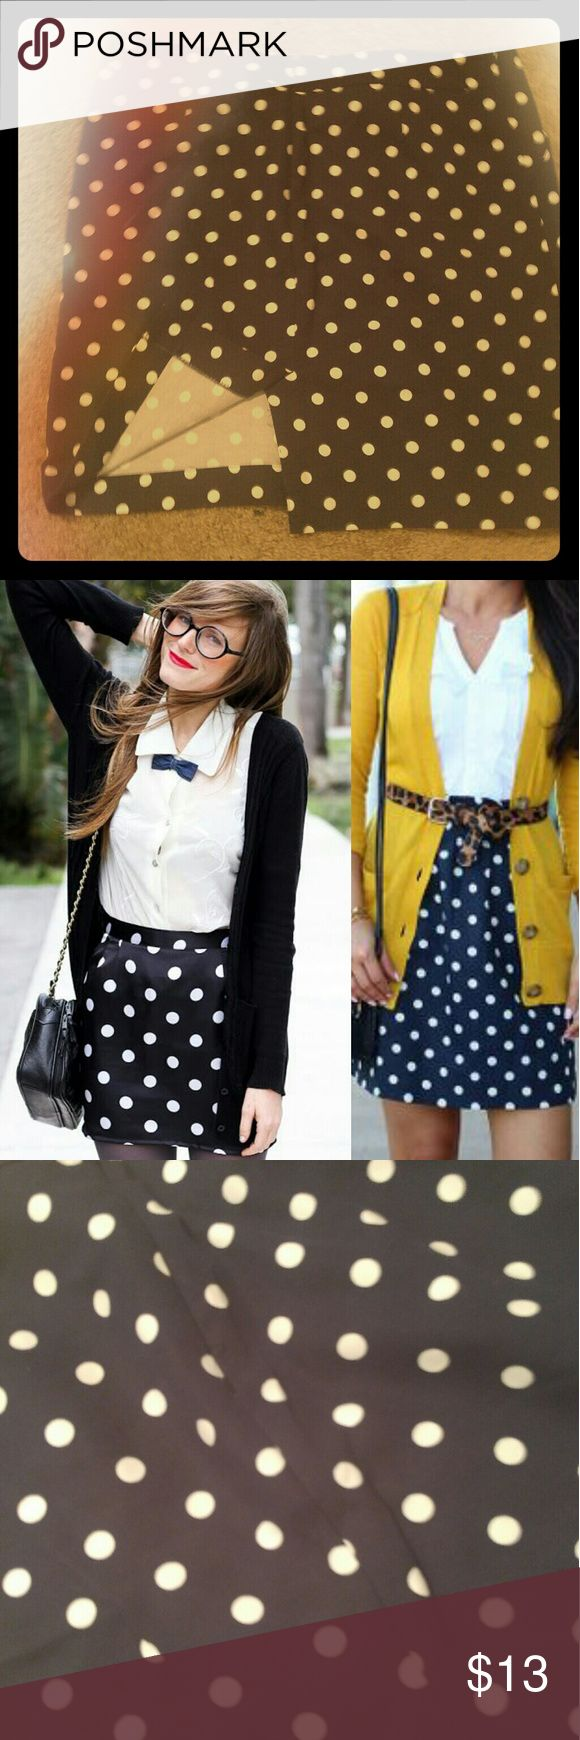 Polka dot Mini *Never worn* Fits snug for a sexy mini look. Pair with a yellow top to make a stunning outfit! Merona Skirts Pencil